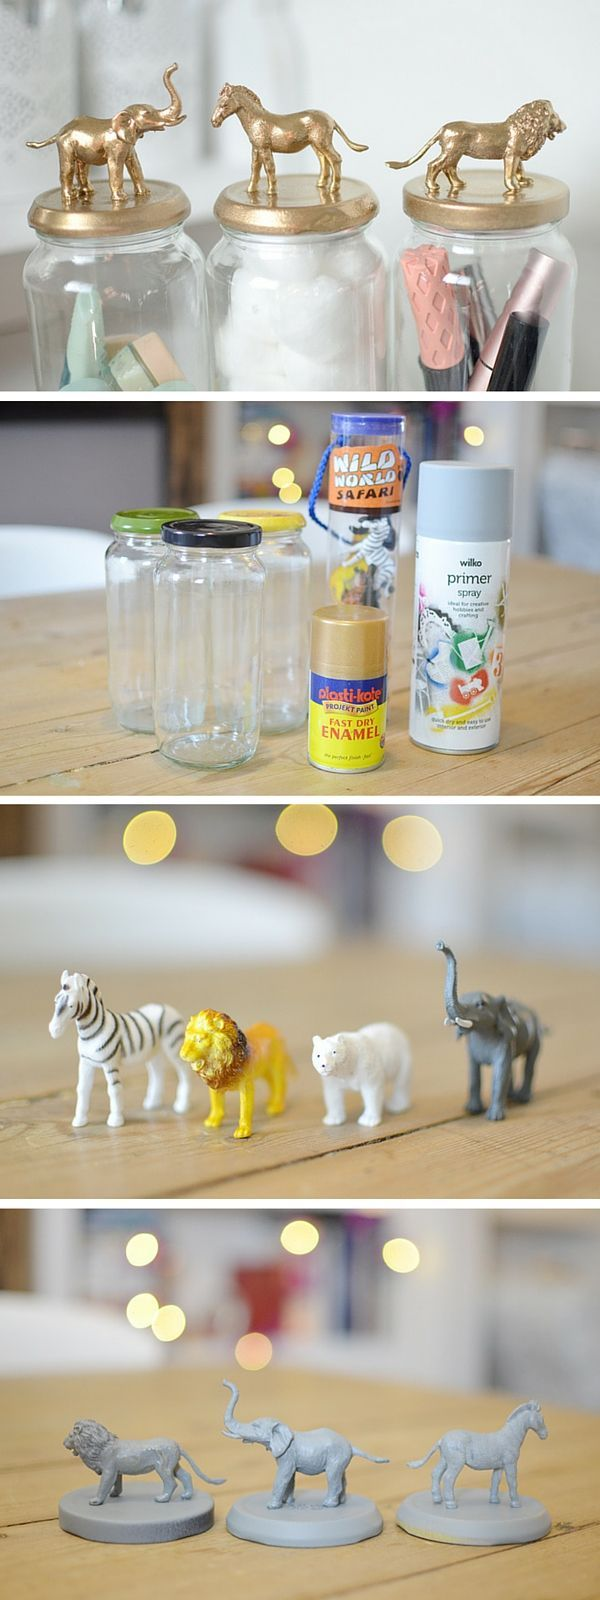 10 Brilliant DIY Home Decor Ideas Check Out The Tutorial Gold Animal Jars And More